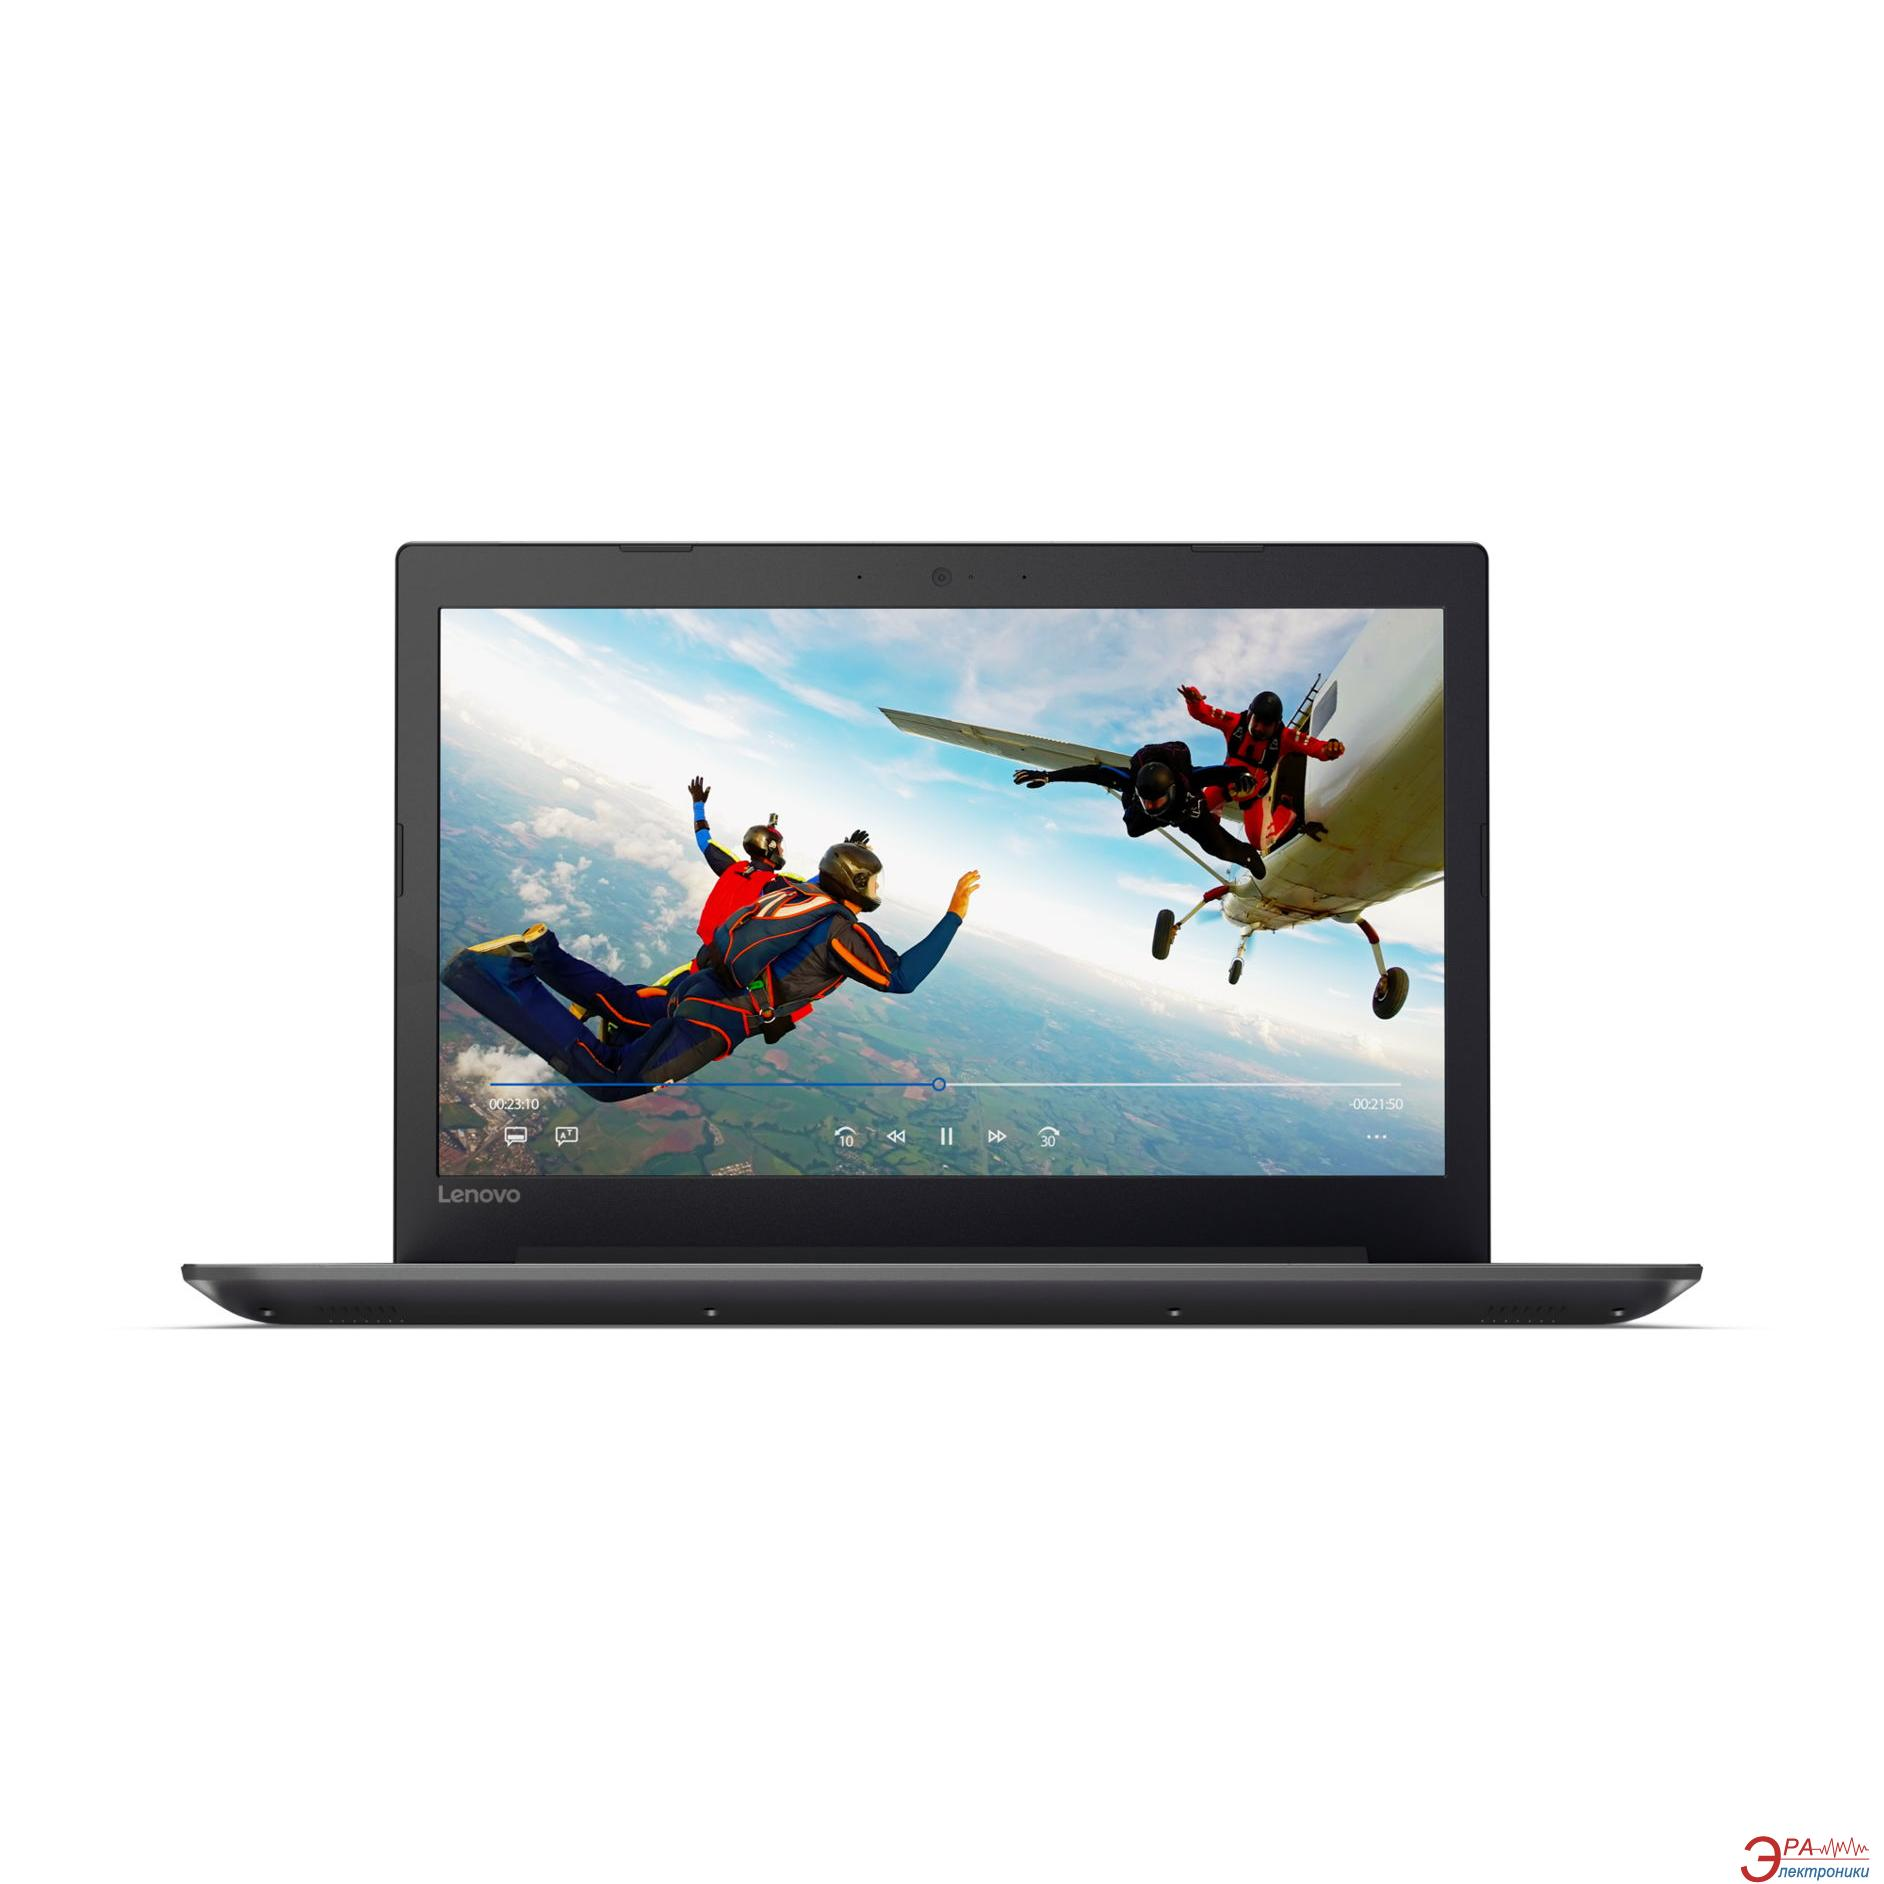 Ноутбук Lenovo IdeaPad 320-15IKB (80XL02X0RA) Black 15,6